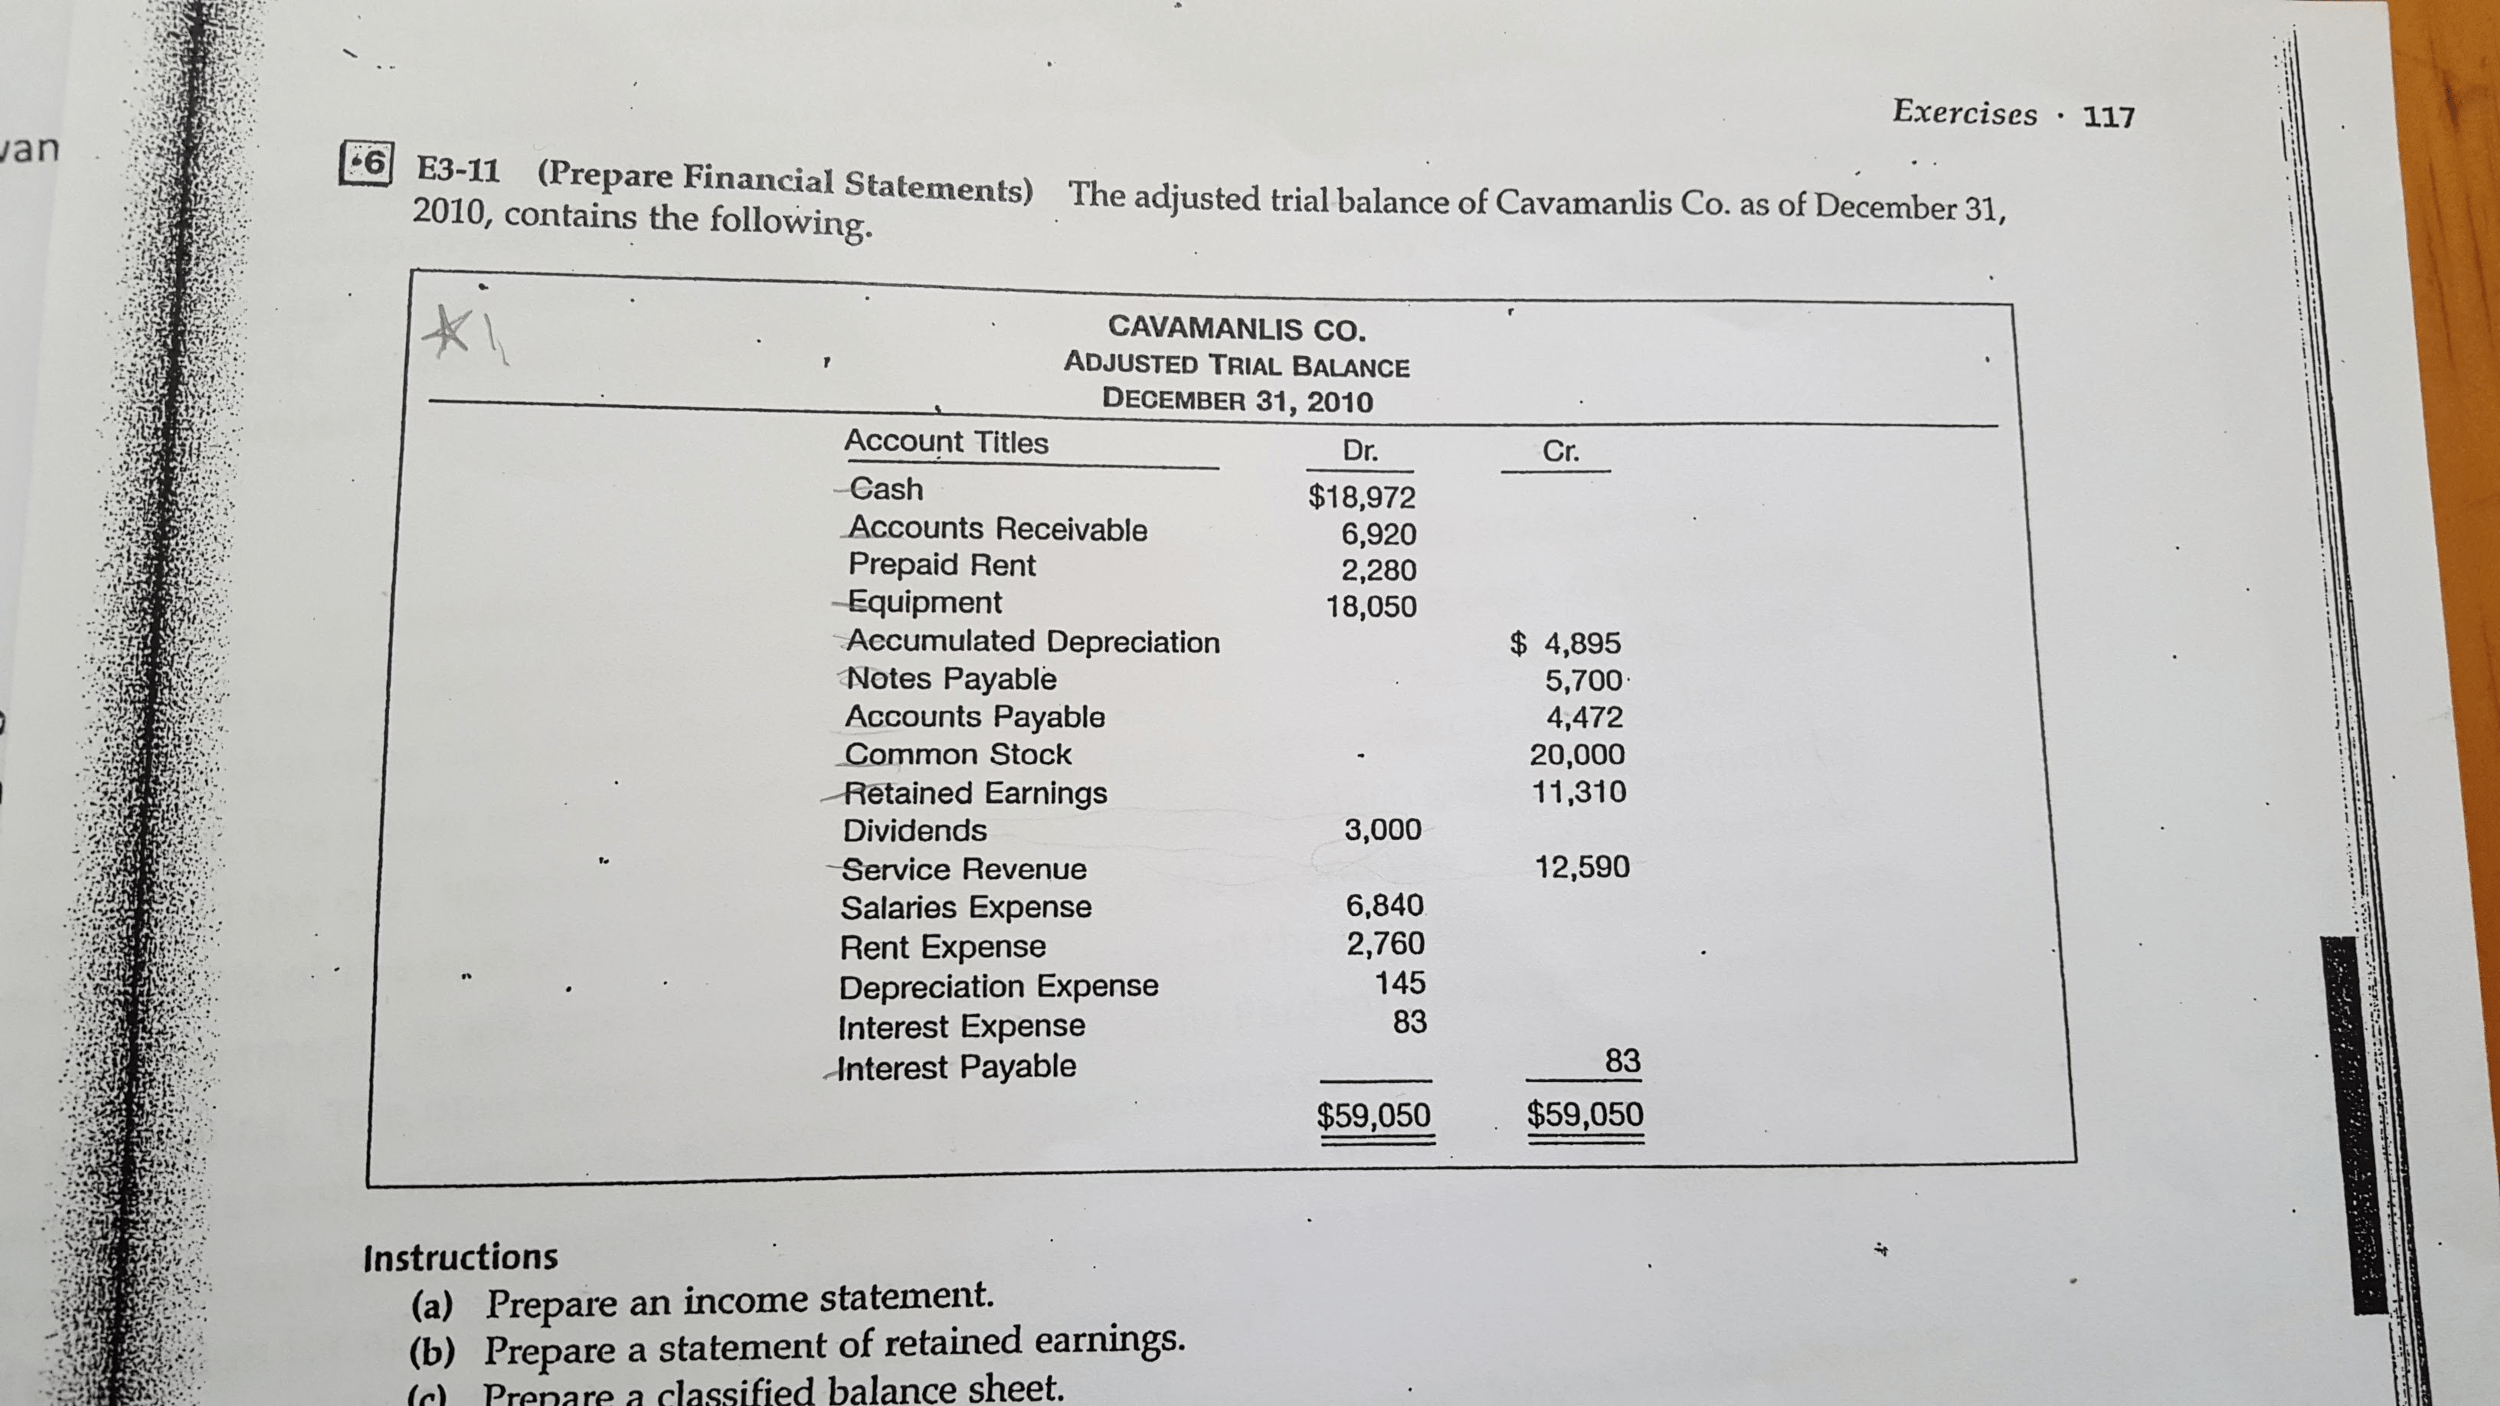 Solved The Adjusted Trial Balance Of Cavamanlis Co As Of